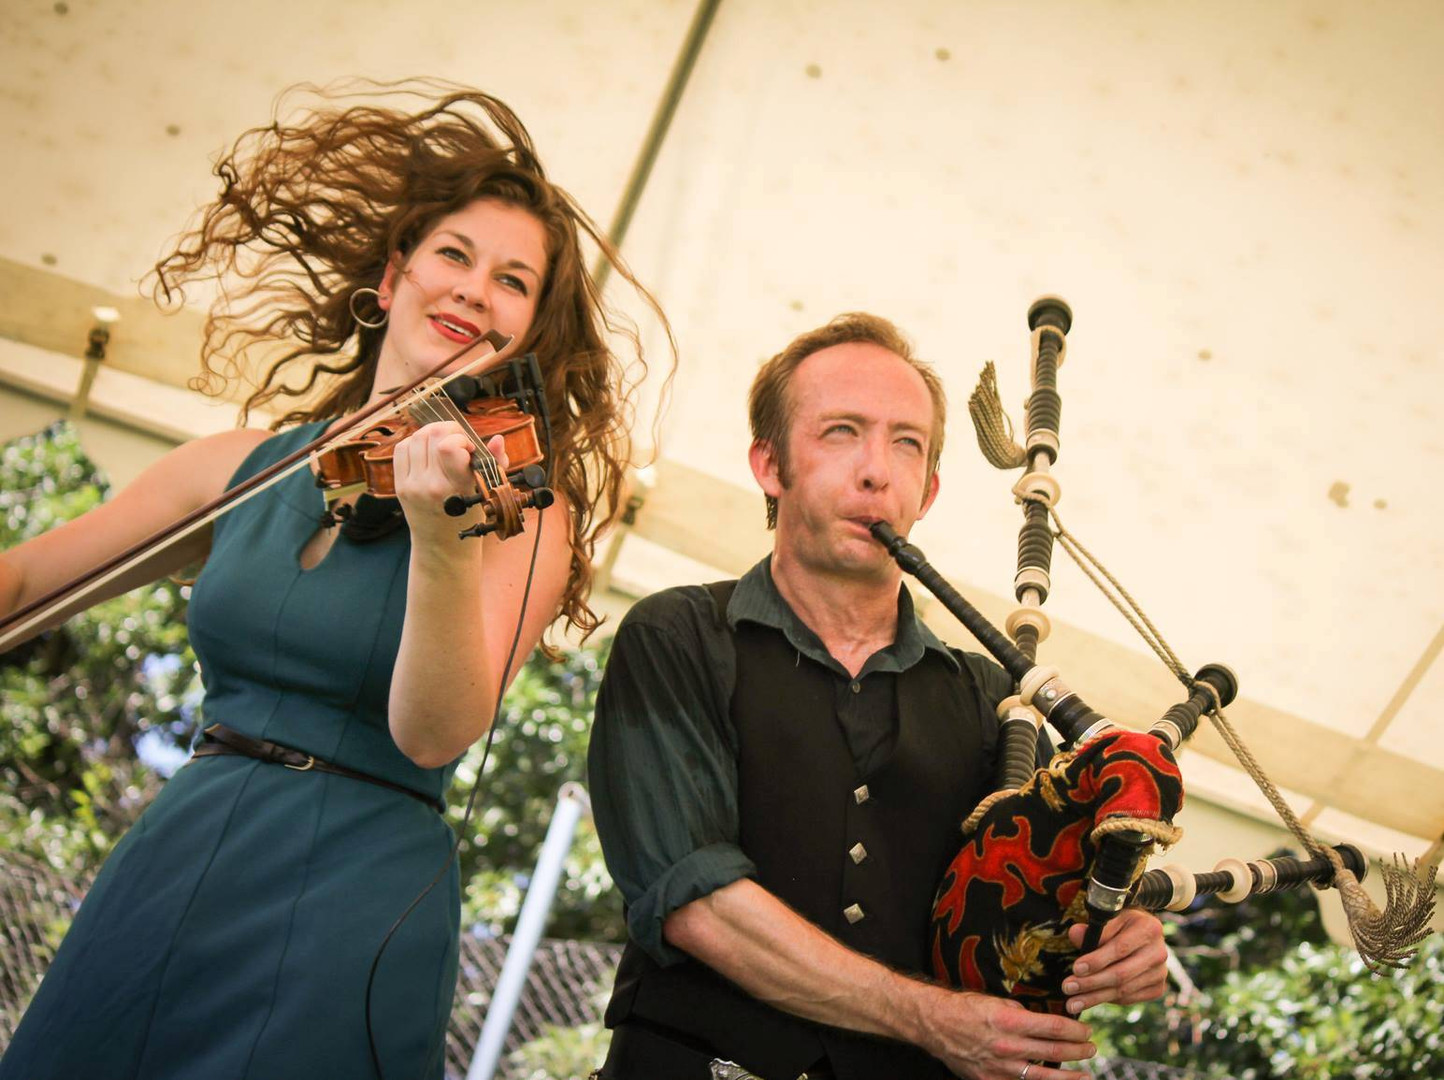 David Brewer & Rebecca Lomnicky at the Portland Highland Games. Kerry McQuaid Photography